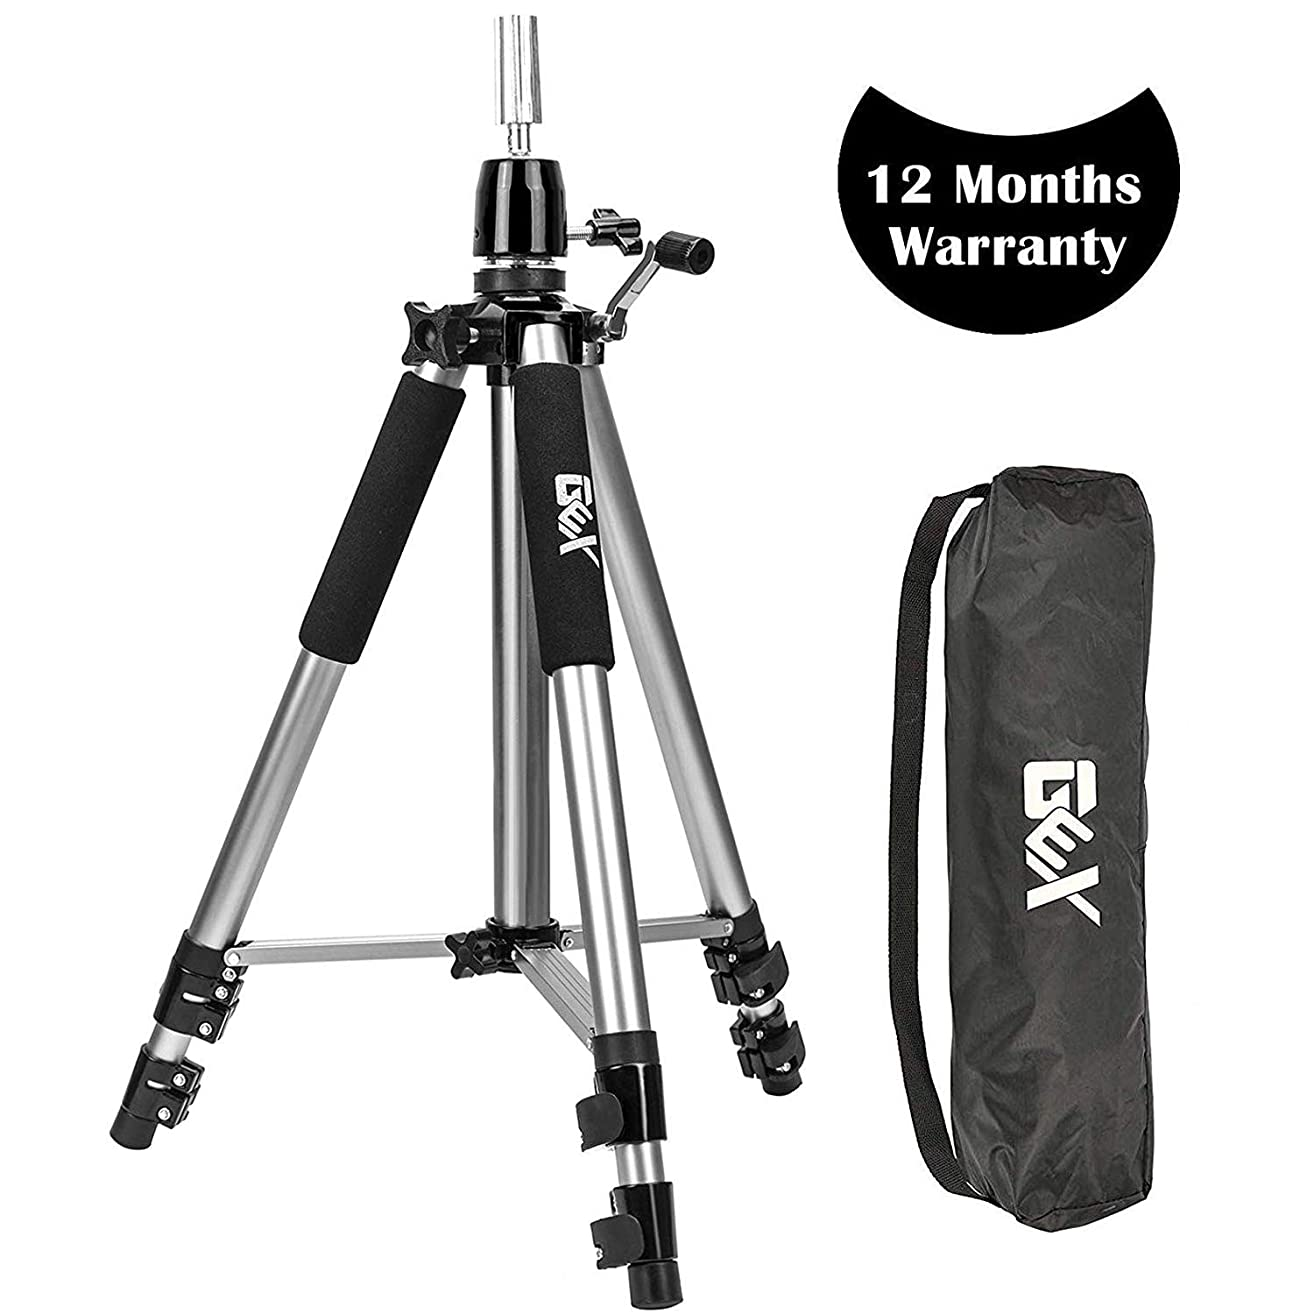 GEX Heavy Duty Canvas Block Head Tripod Cosmetology Training Doll Head Stand Mannequin Manikin Head Tripod Wig Stand With Travel Bag Silver Color